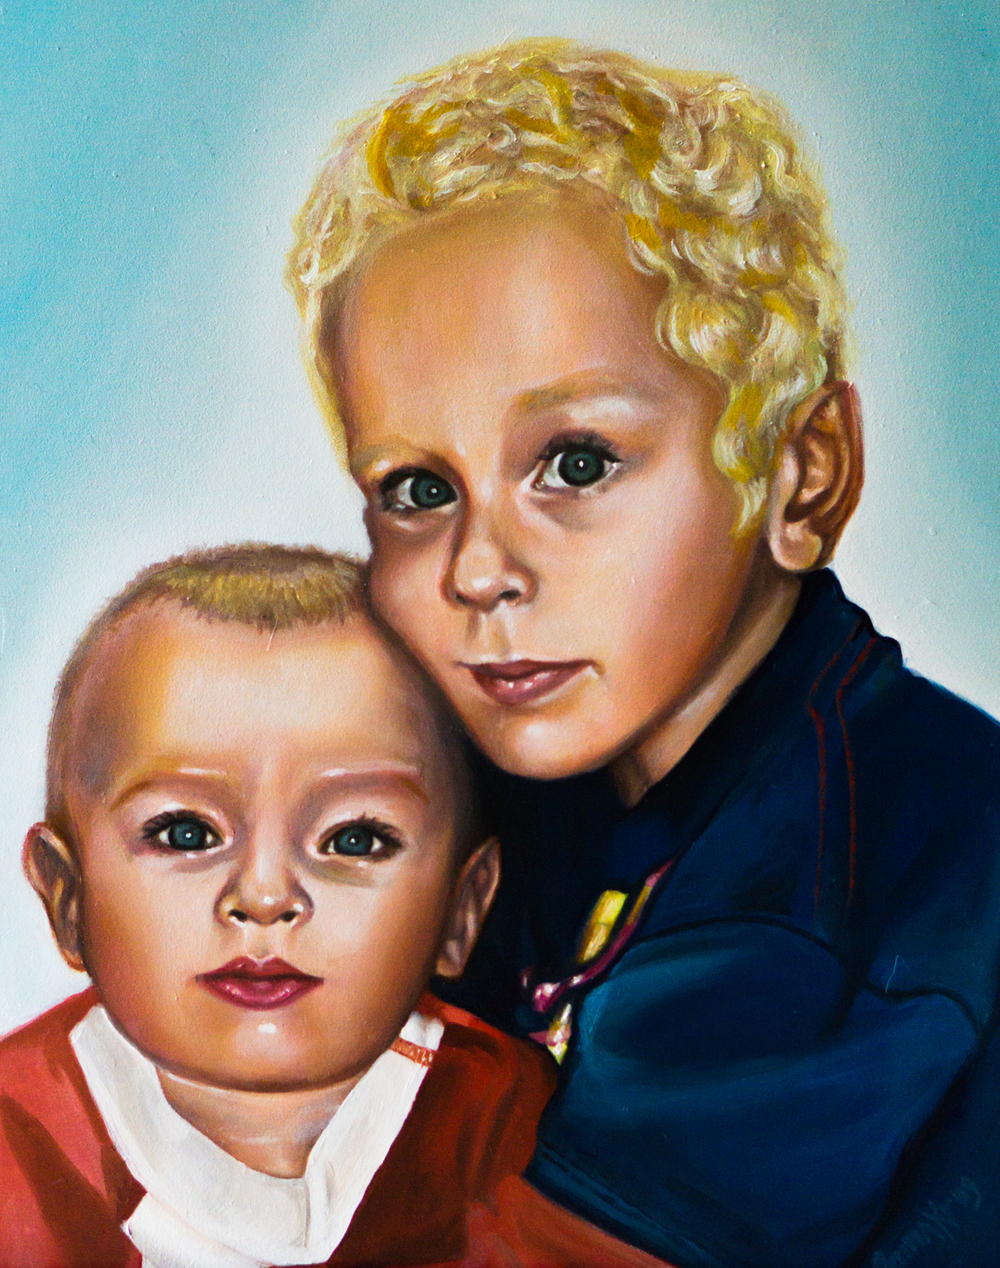 """Karen Kids""- Oil on Gessobord, 12x16"""